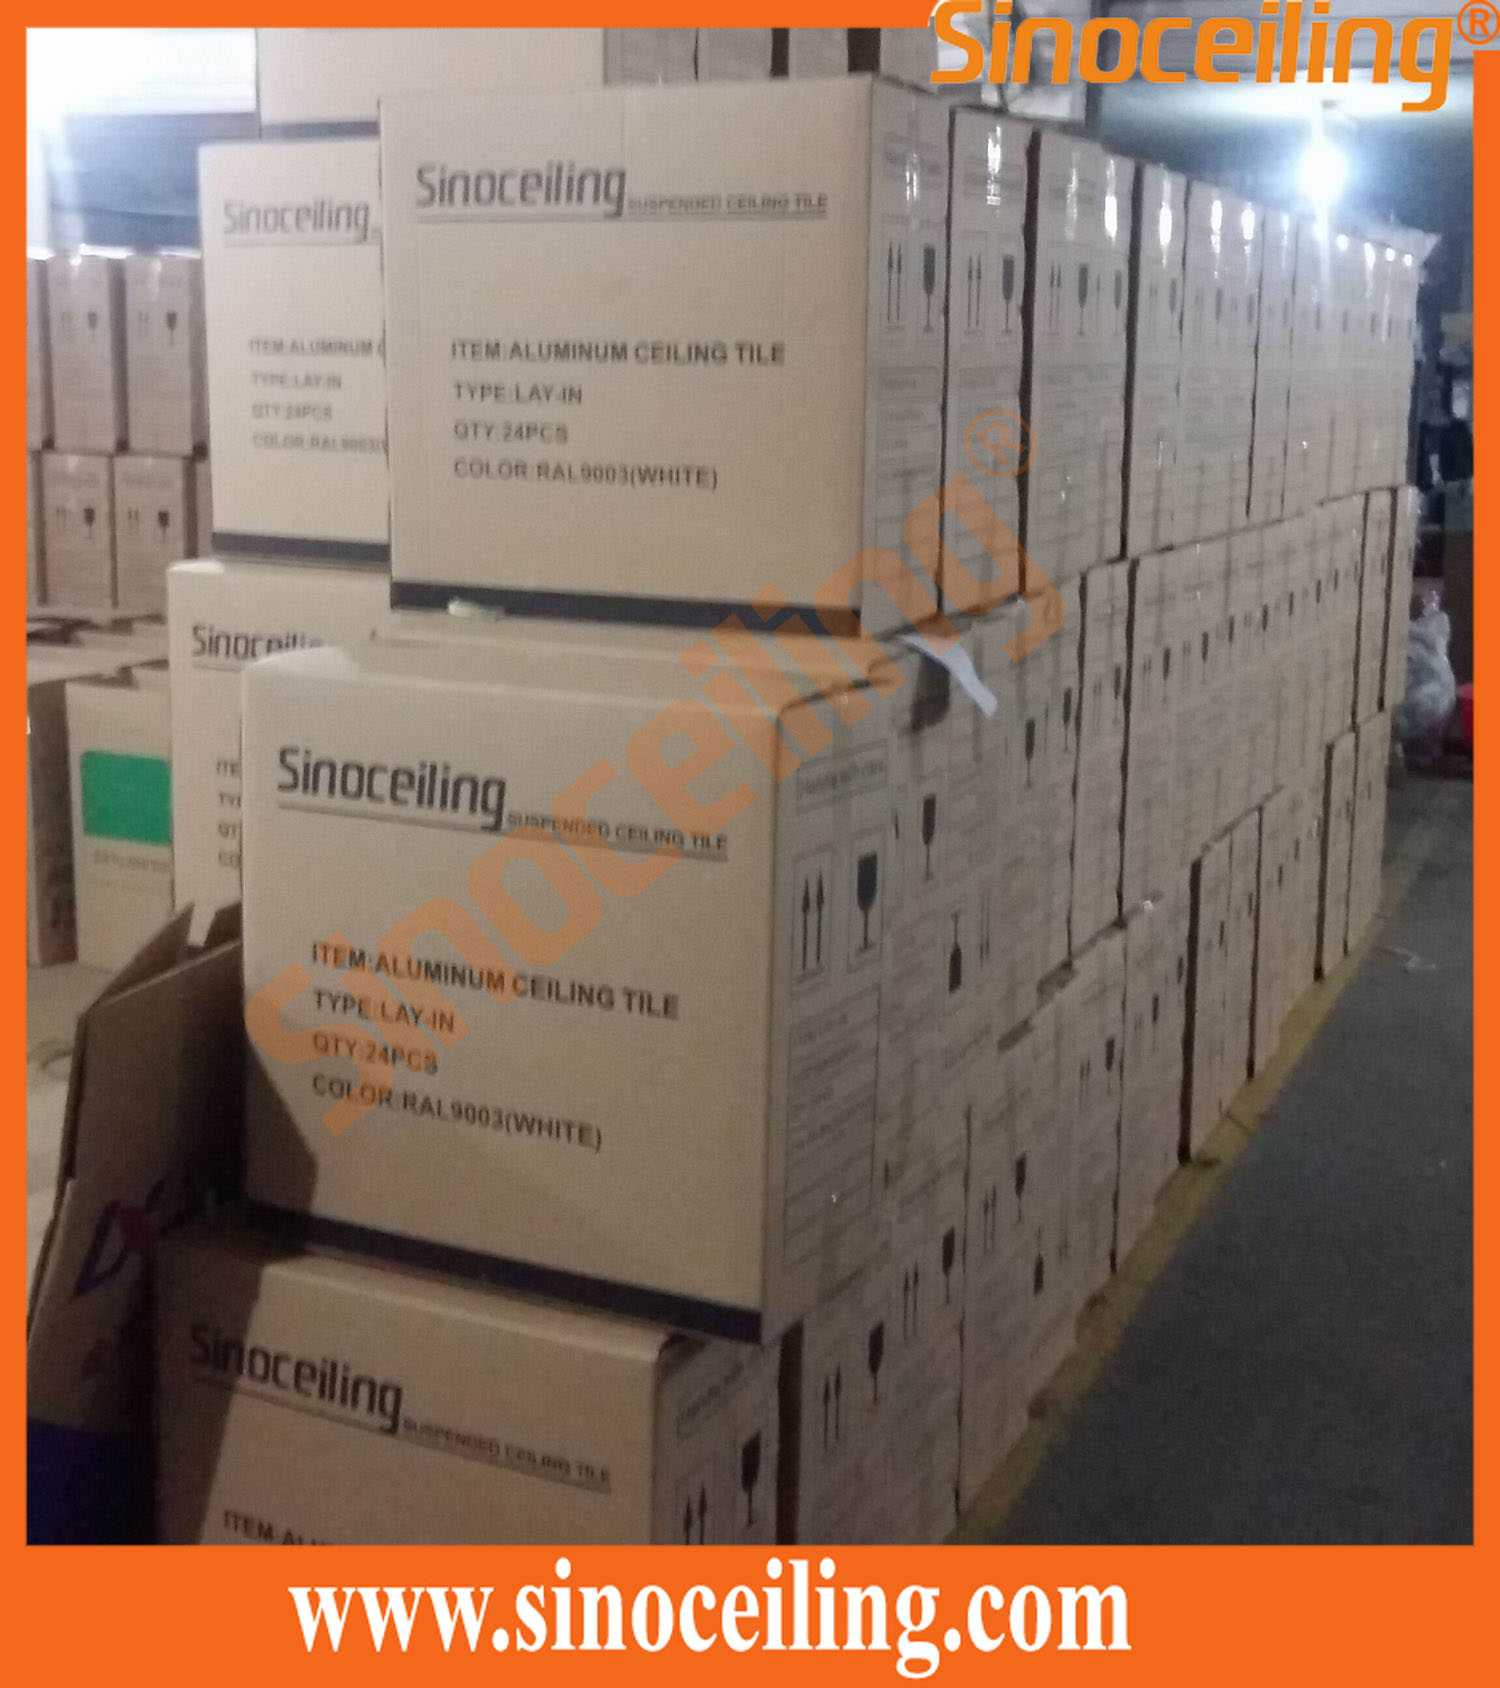 Aluminum Ceiling Tile Carton Of Aluminum Ceiling Tile